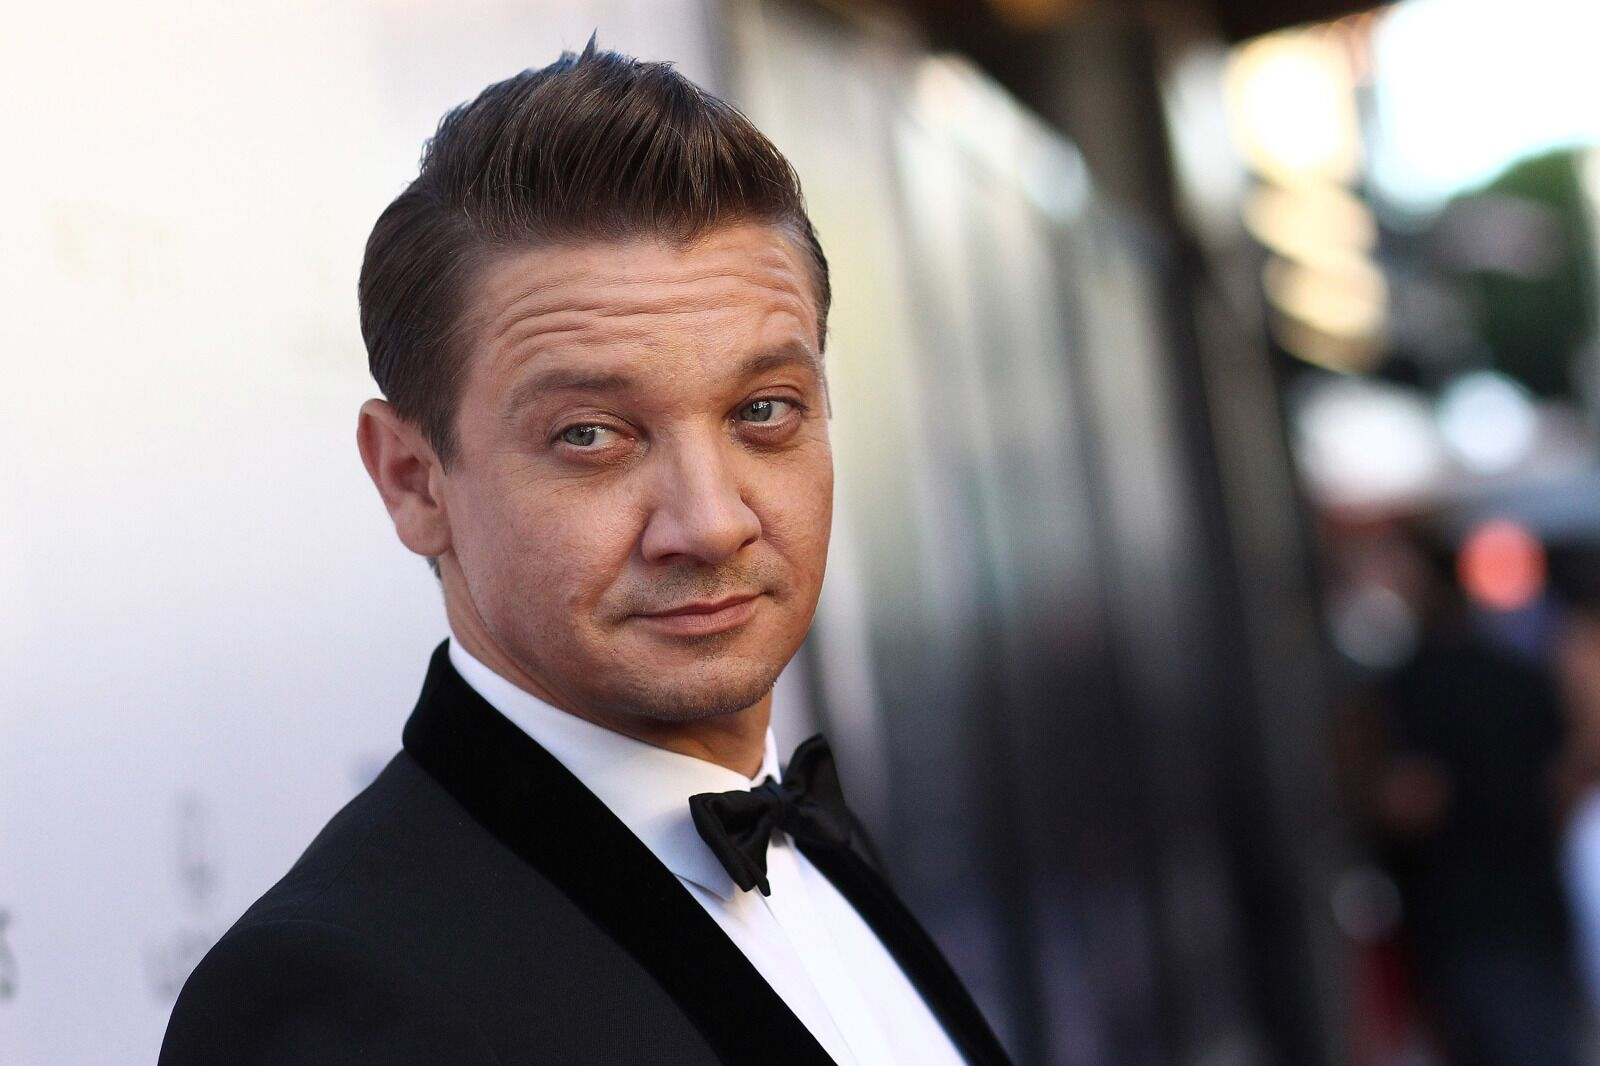 Jeremy Renner appears as one scuffed-up Hawkeye on Instagram